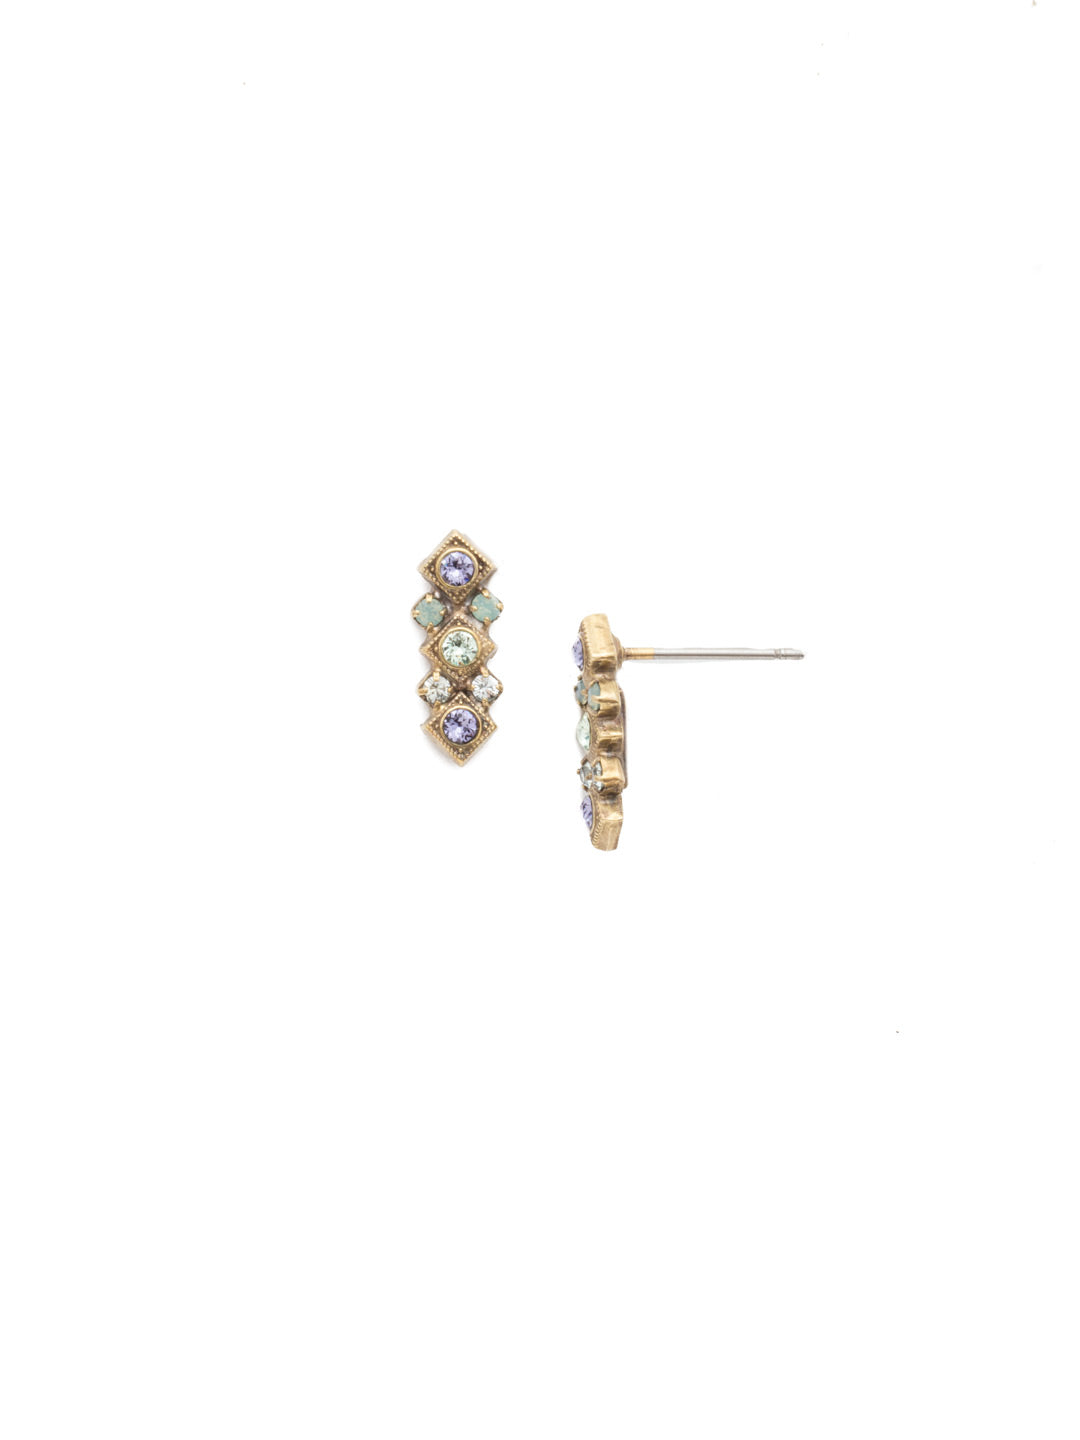 Madeline Stud Earrings - EEN4AGIRB